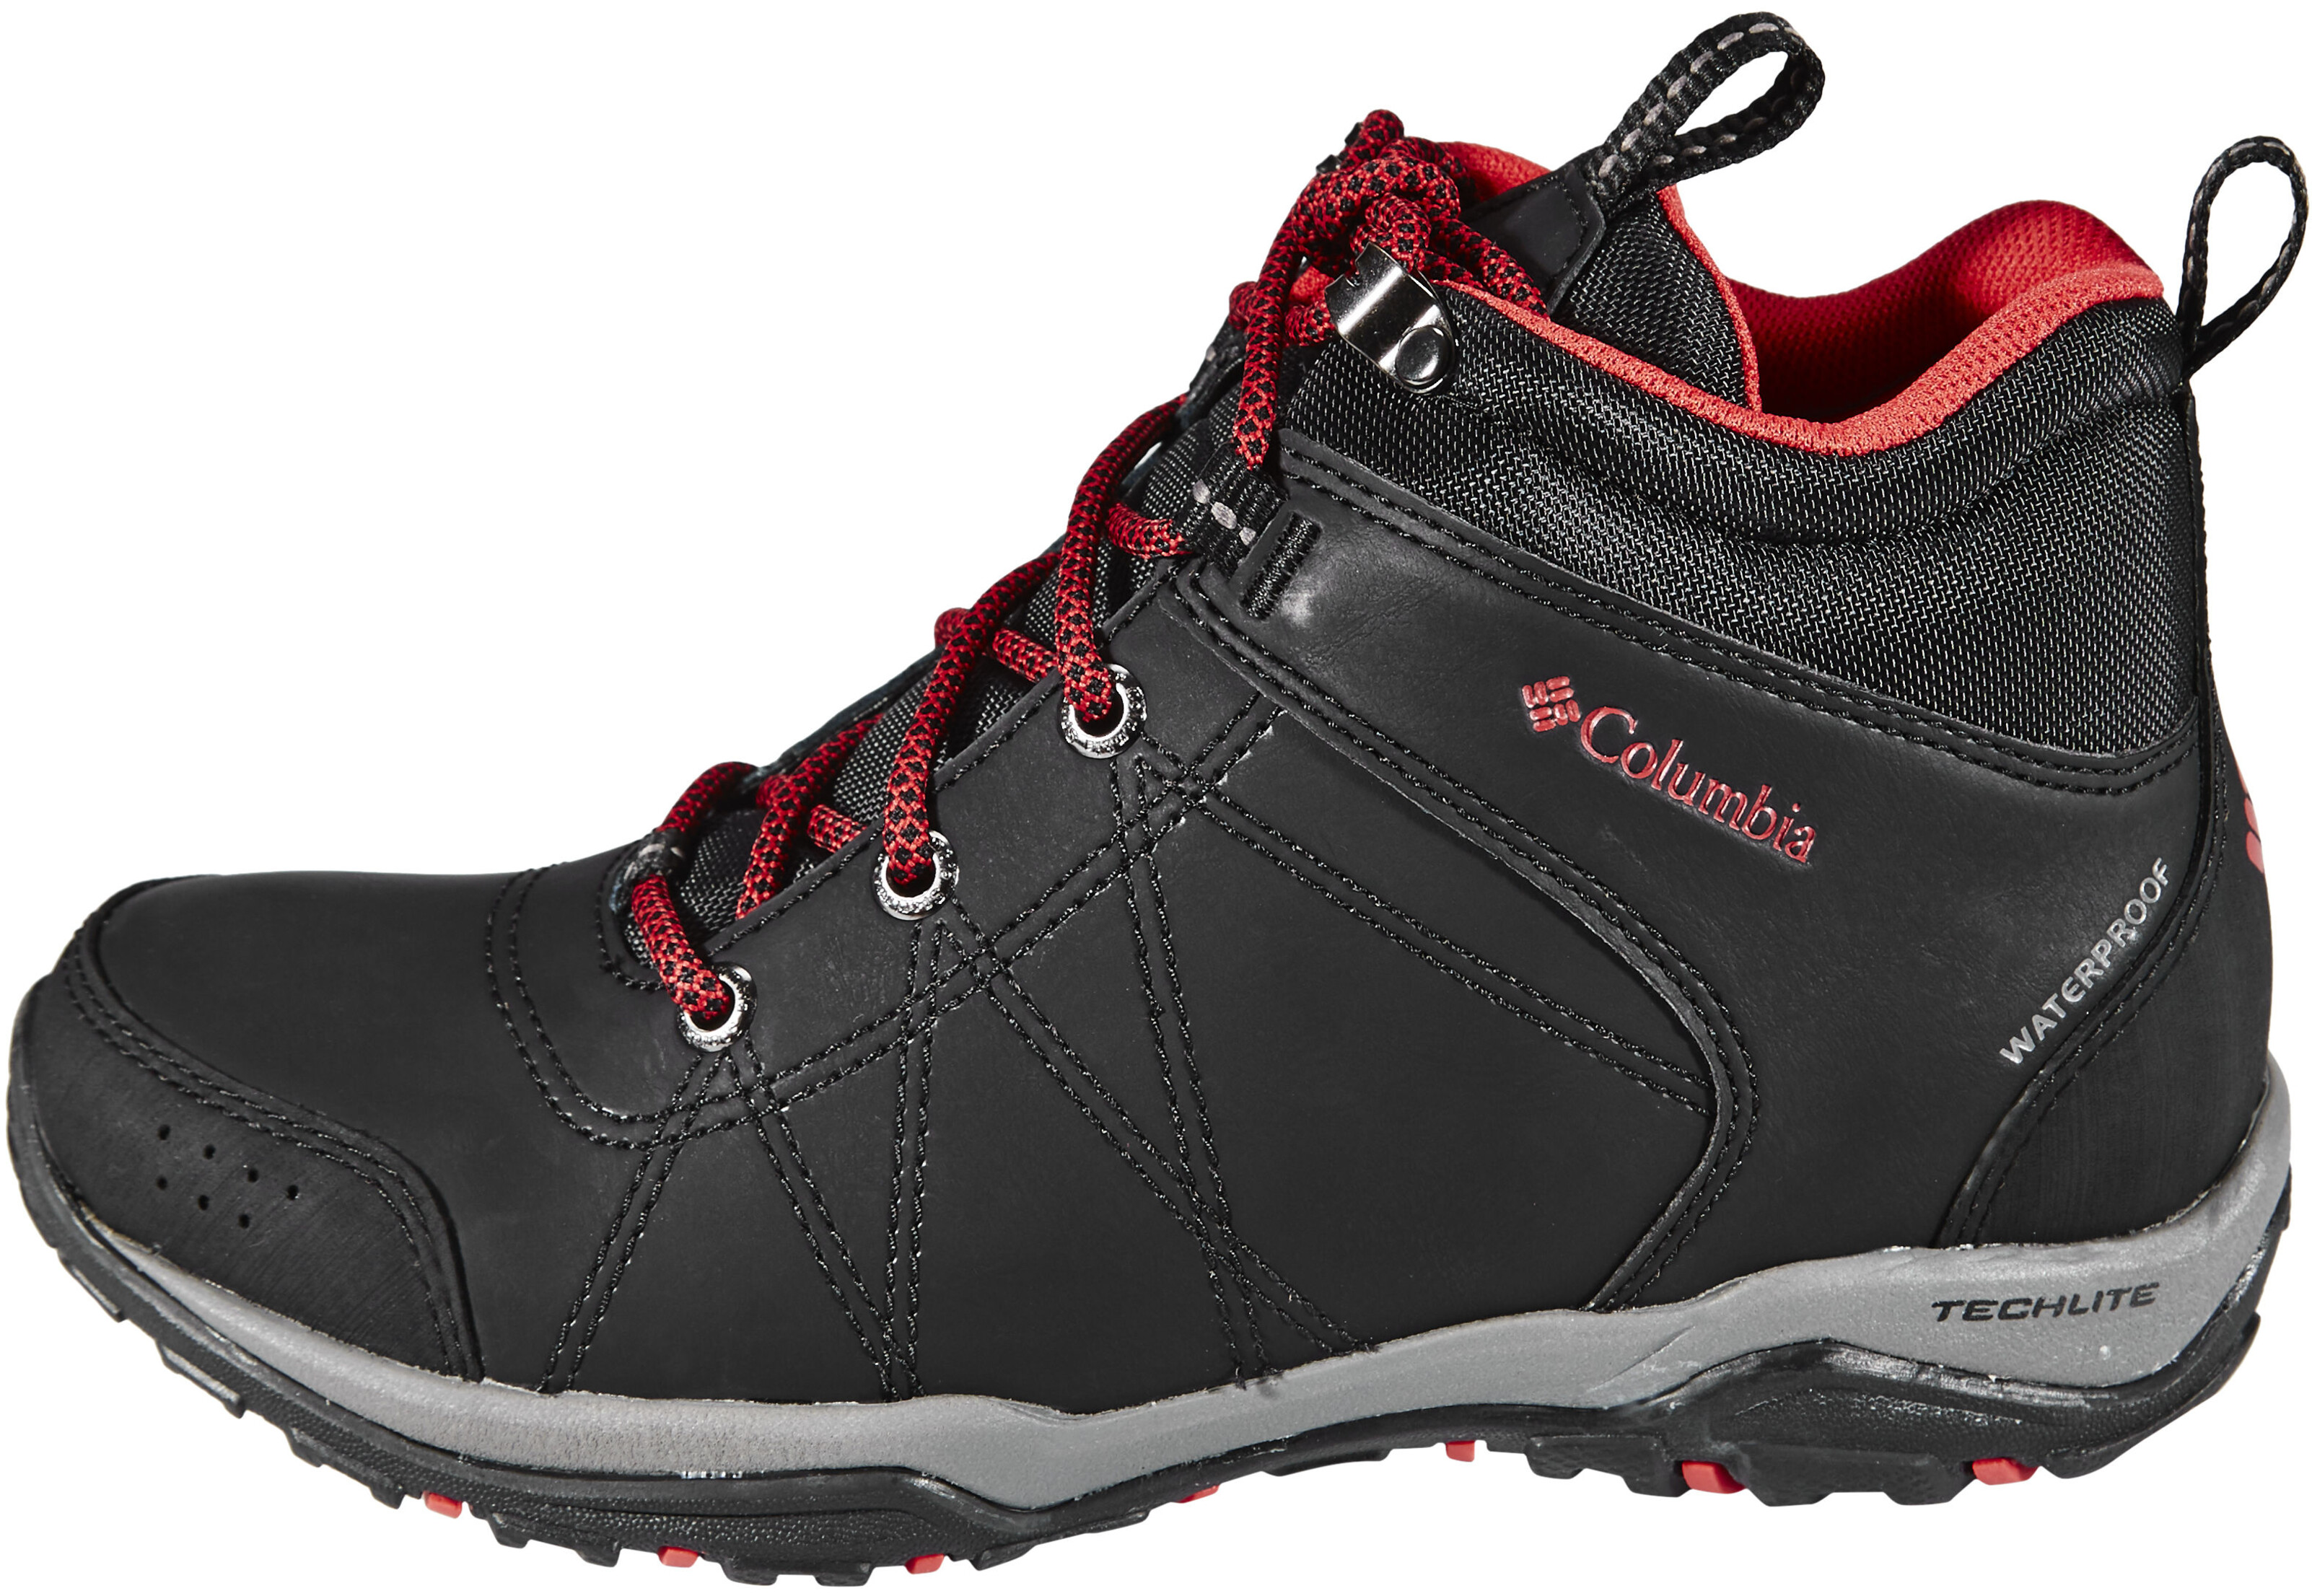 d5f46f32a5e5 Columbia Fire Venture Shoes Women Mid WP black at Addnature.co.uk